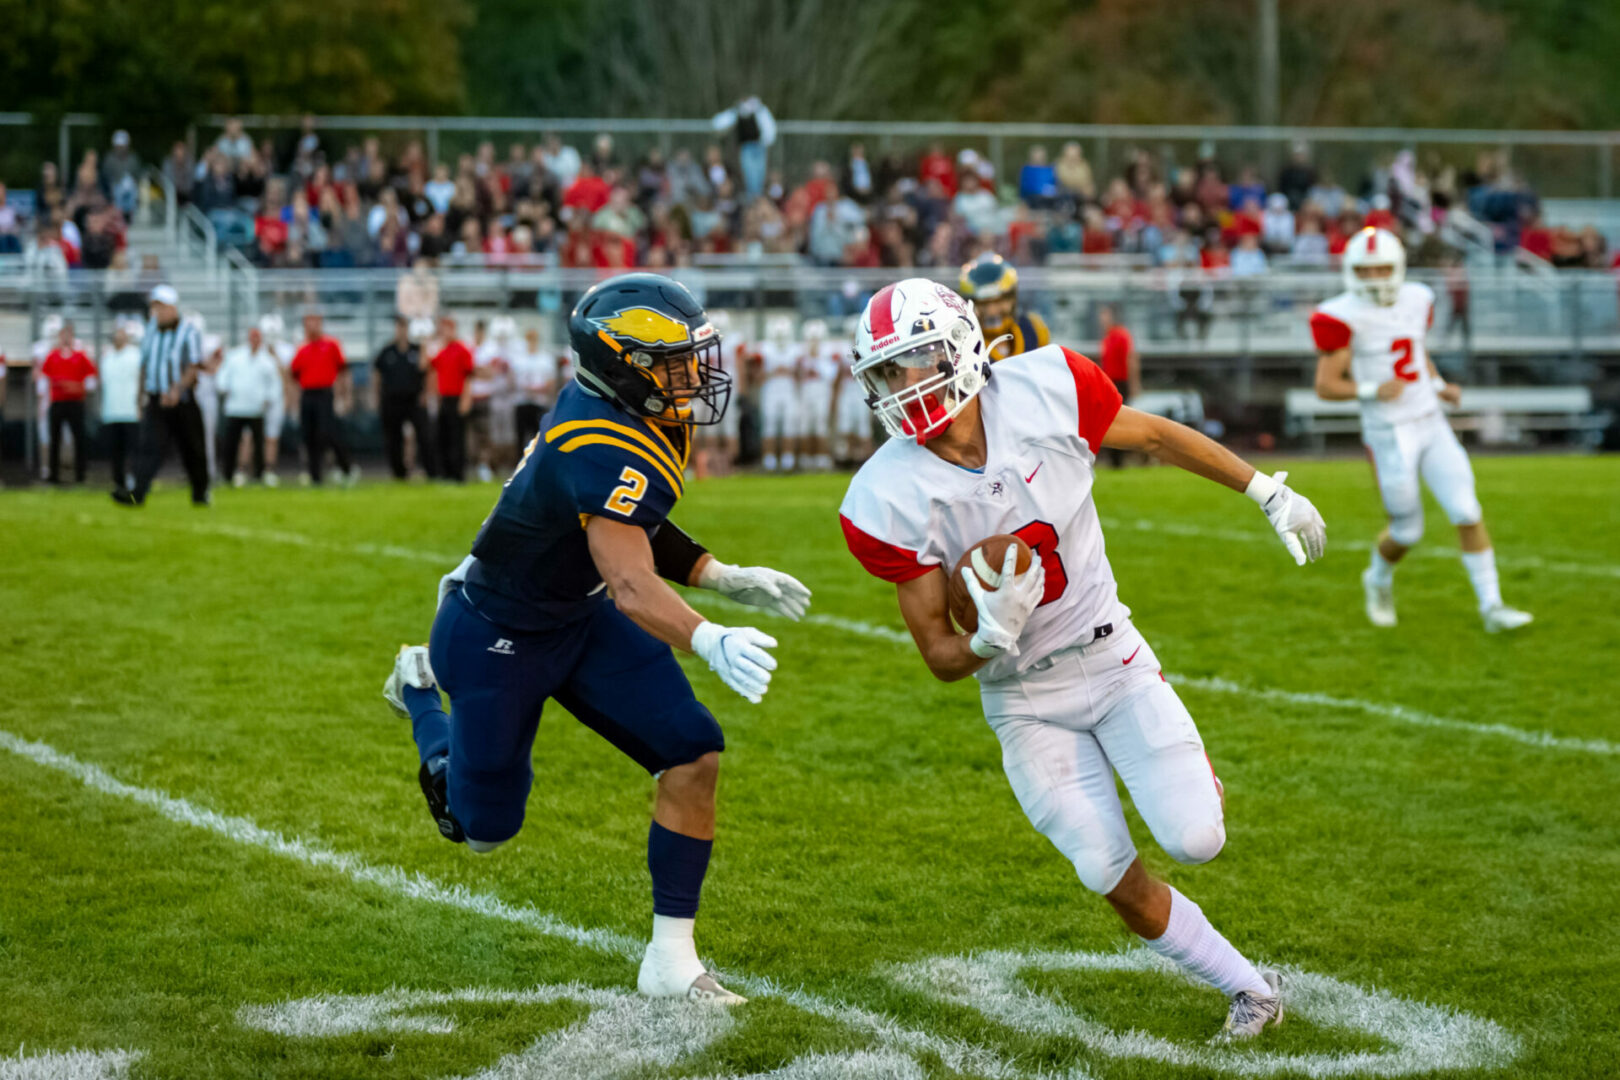 Whitehall rolls over North Muskegon, keeps WMC title hopes alive (PHOTO GALLERY)